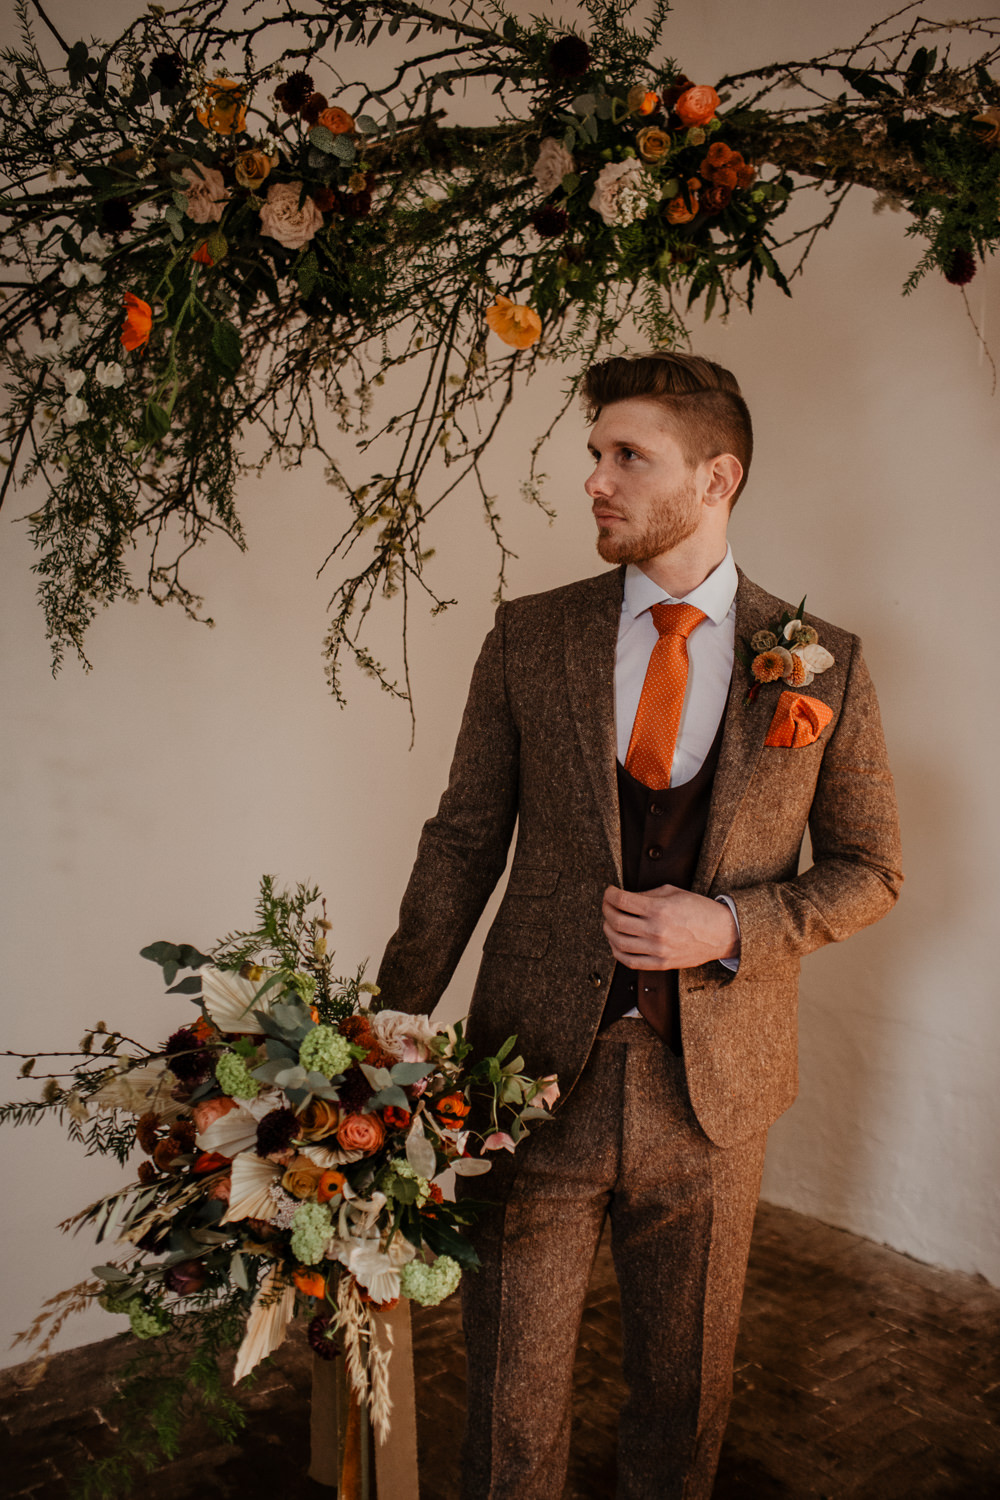 Groom Suit Brown Tweed Orange Tie Maroon Waistcoat Buttonhole Flowers Dried Seed Heads Elopement Wedding Ideas Oilvejoy Photography